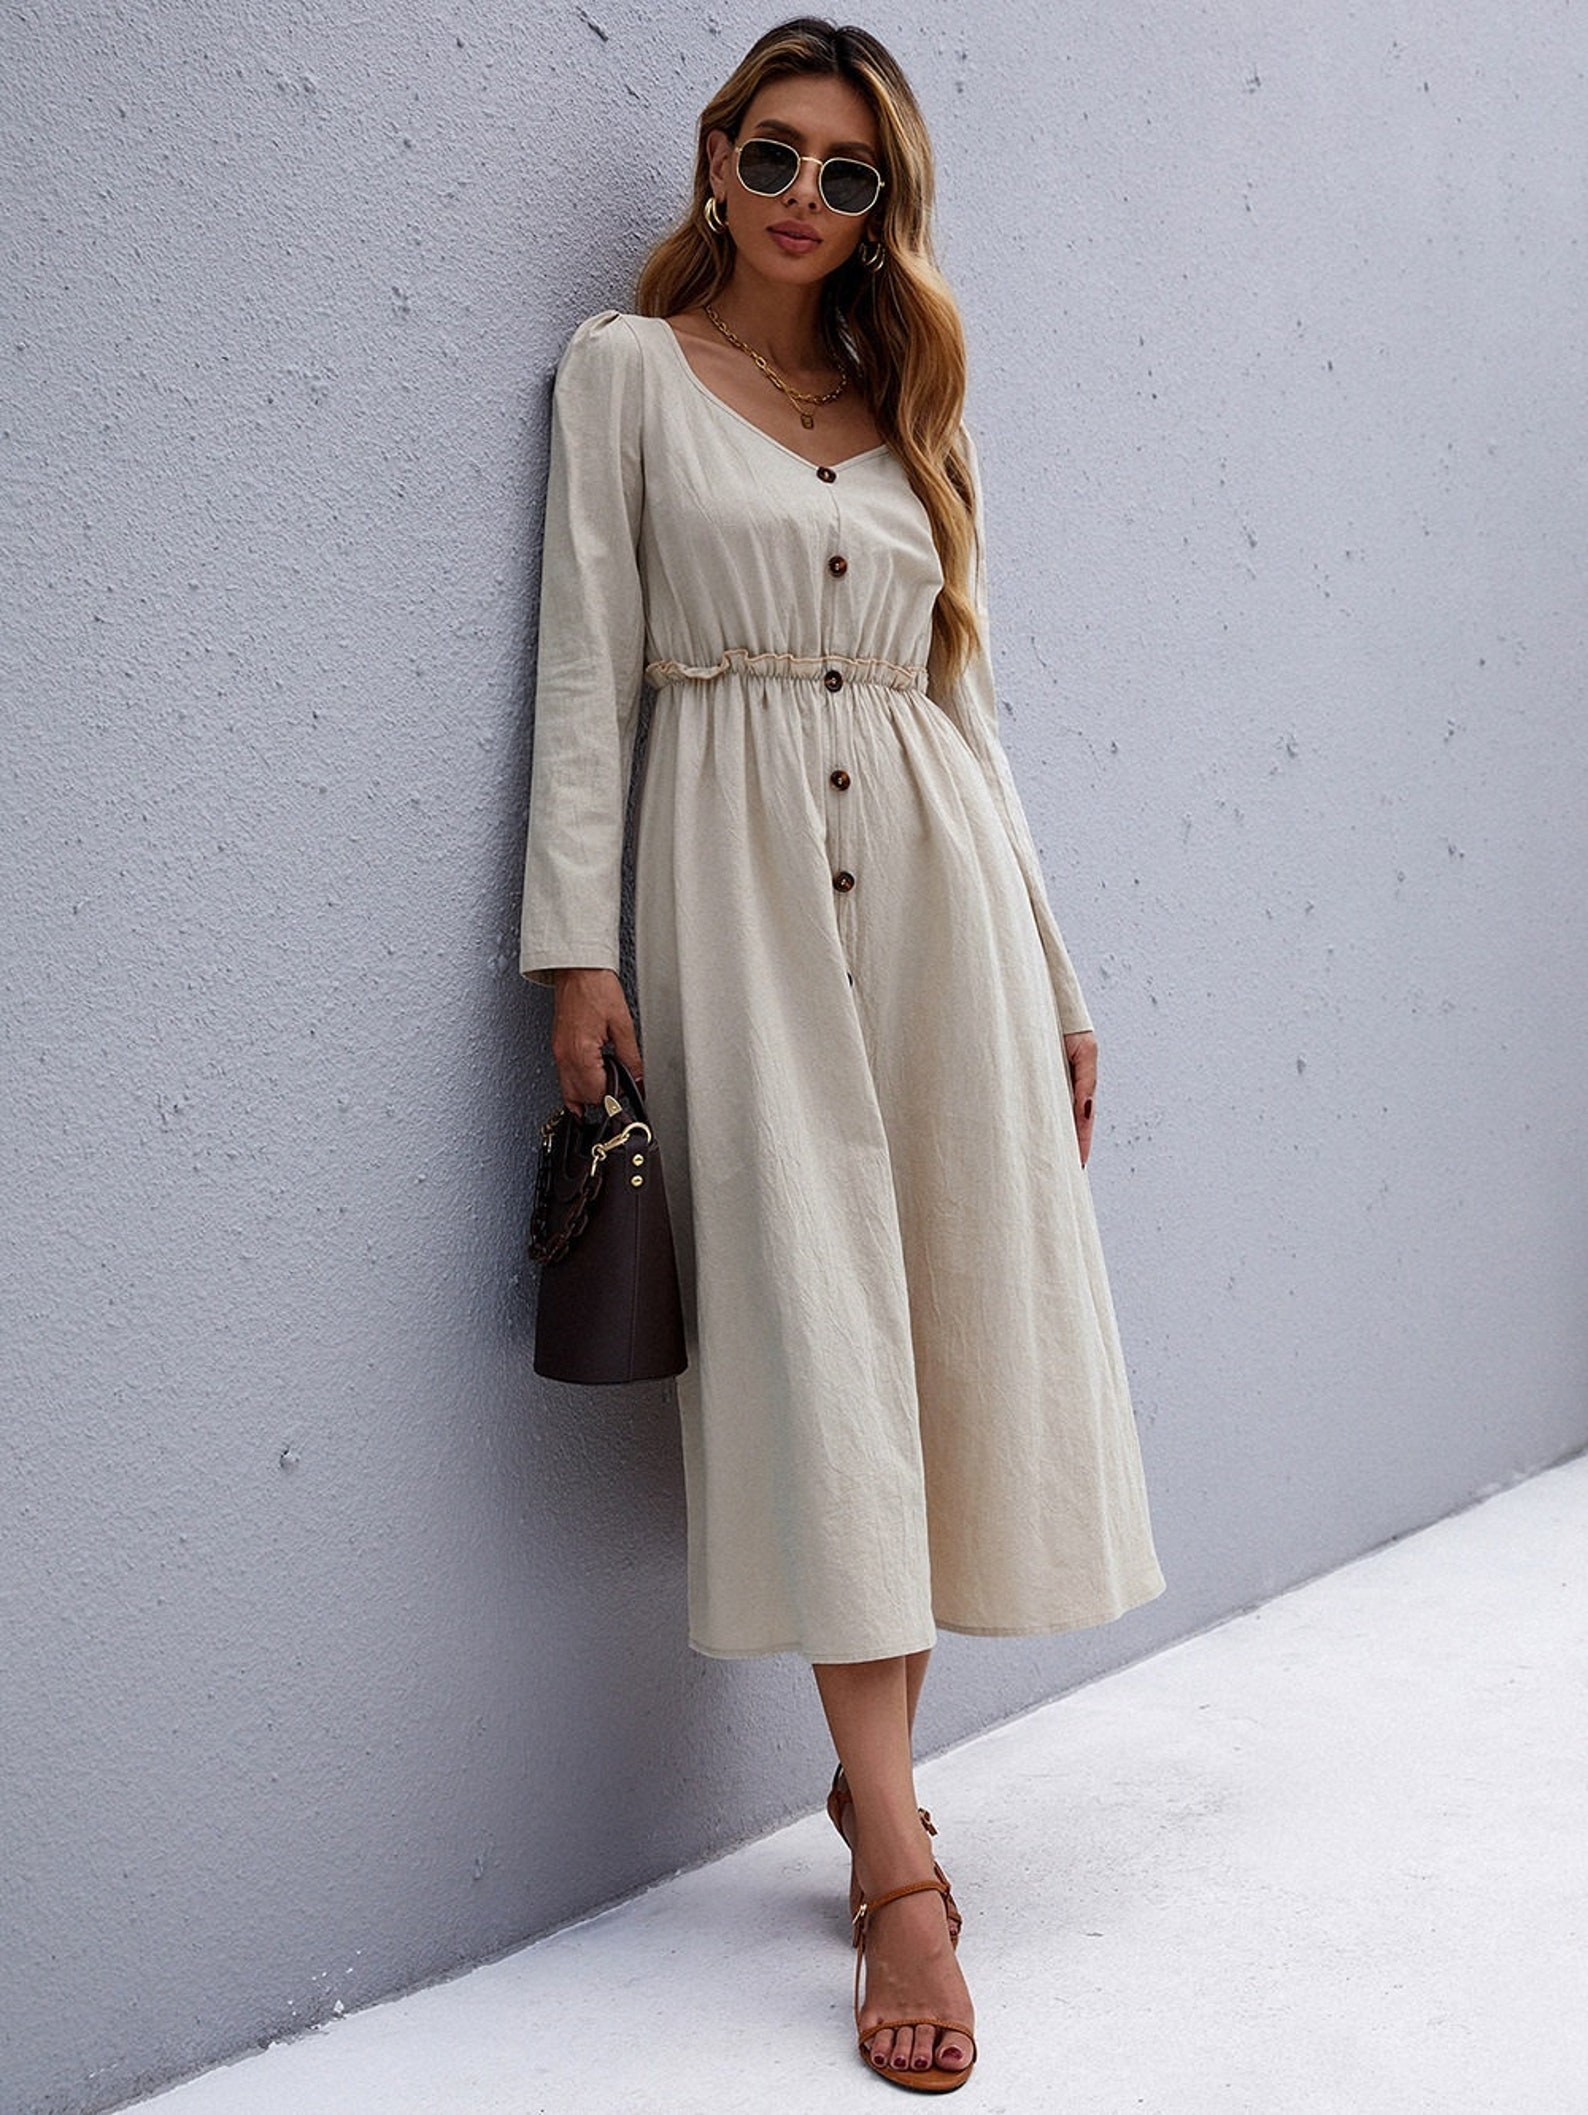 model wearing long sleeve midi dress in khaki with buttons down the front